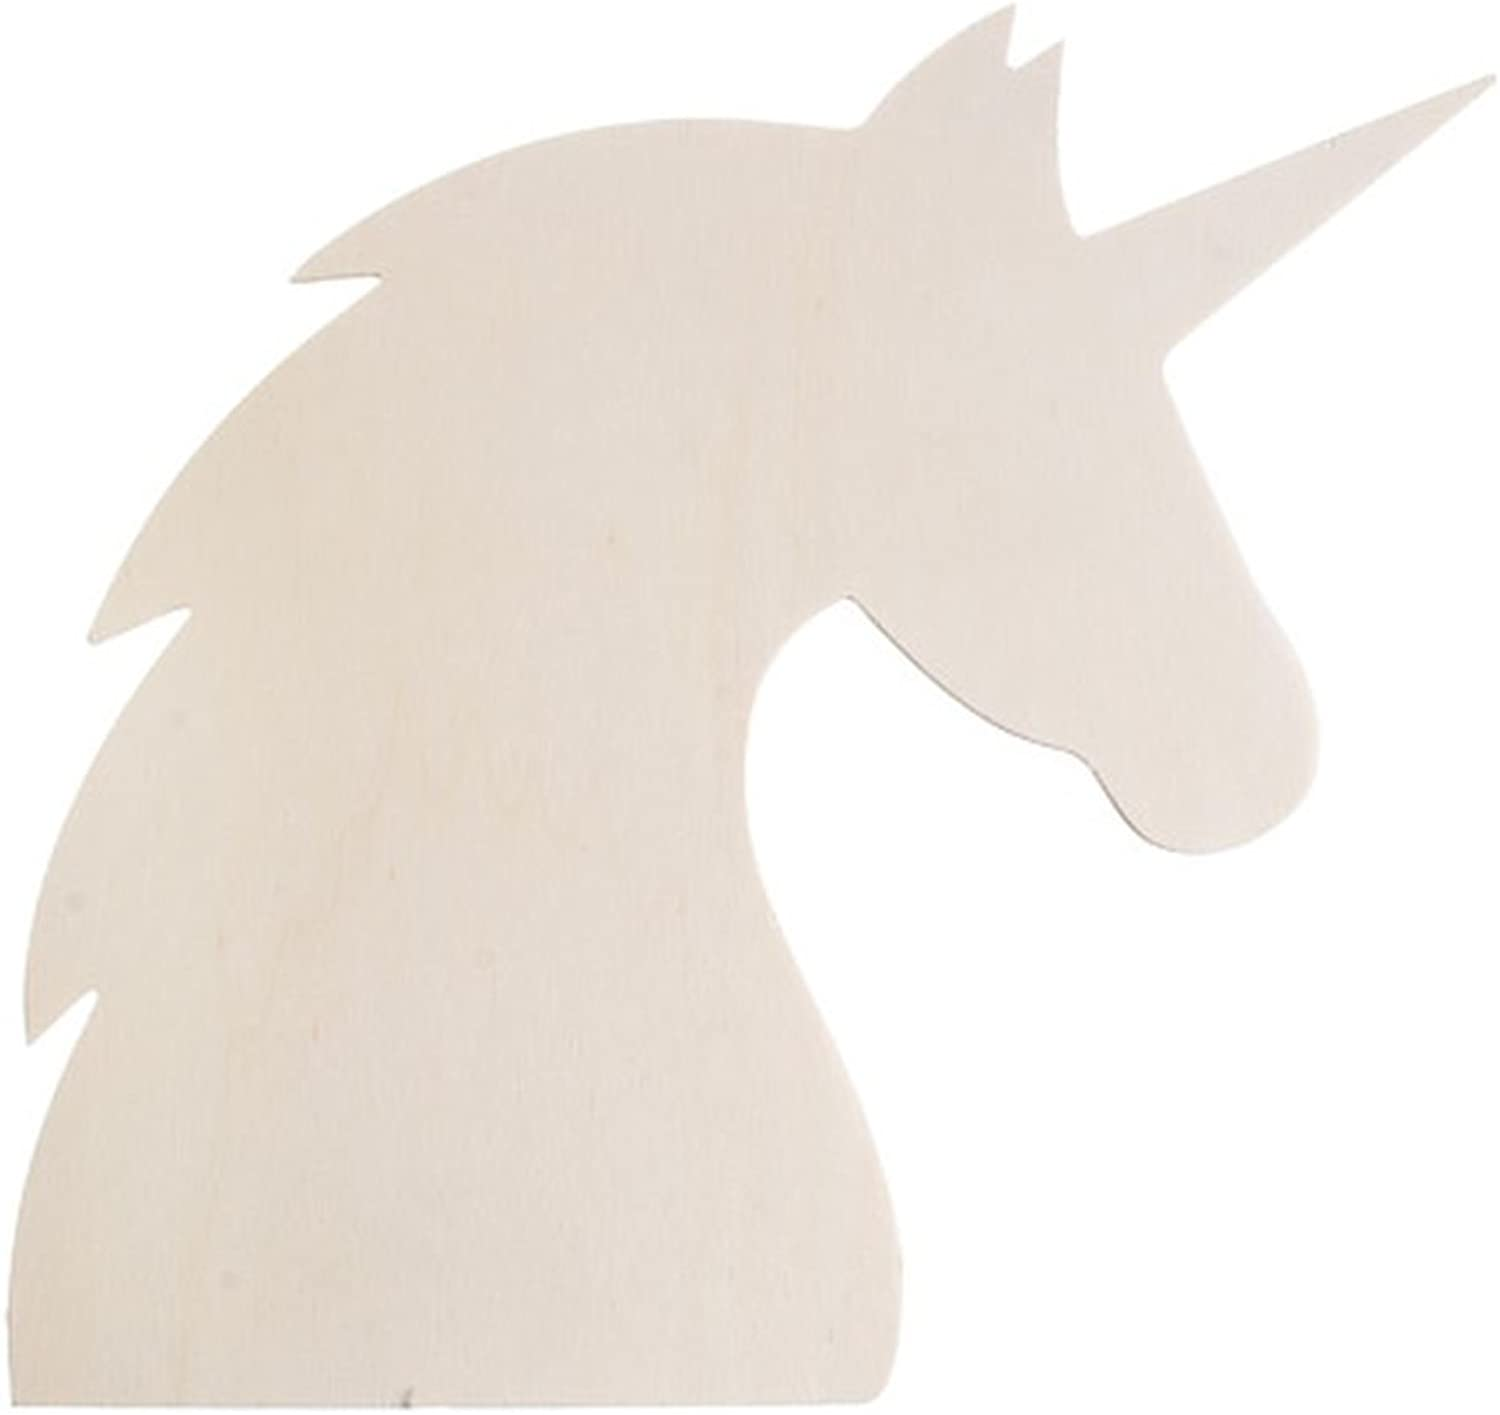 Darice 30037377 Crafting Needs, Wood Unicorn Profile Cutout, Natural, 12 x 11.6 Inches.